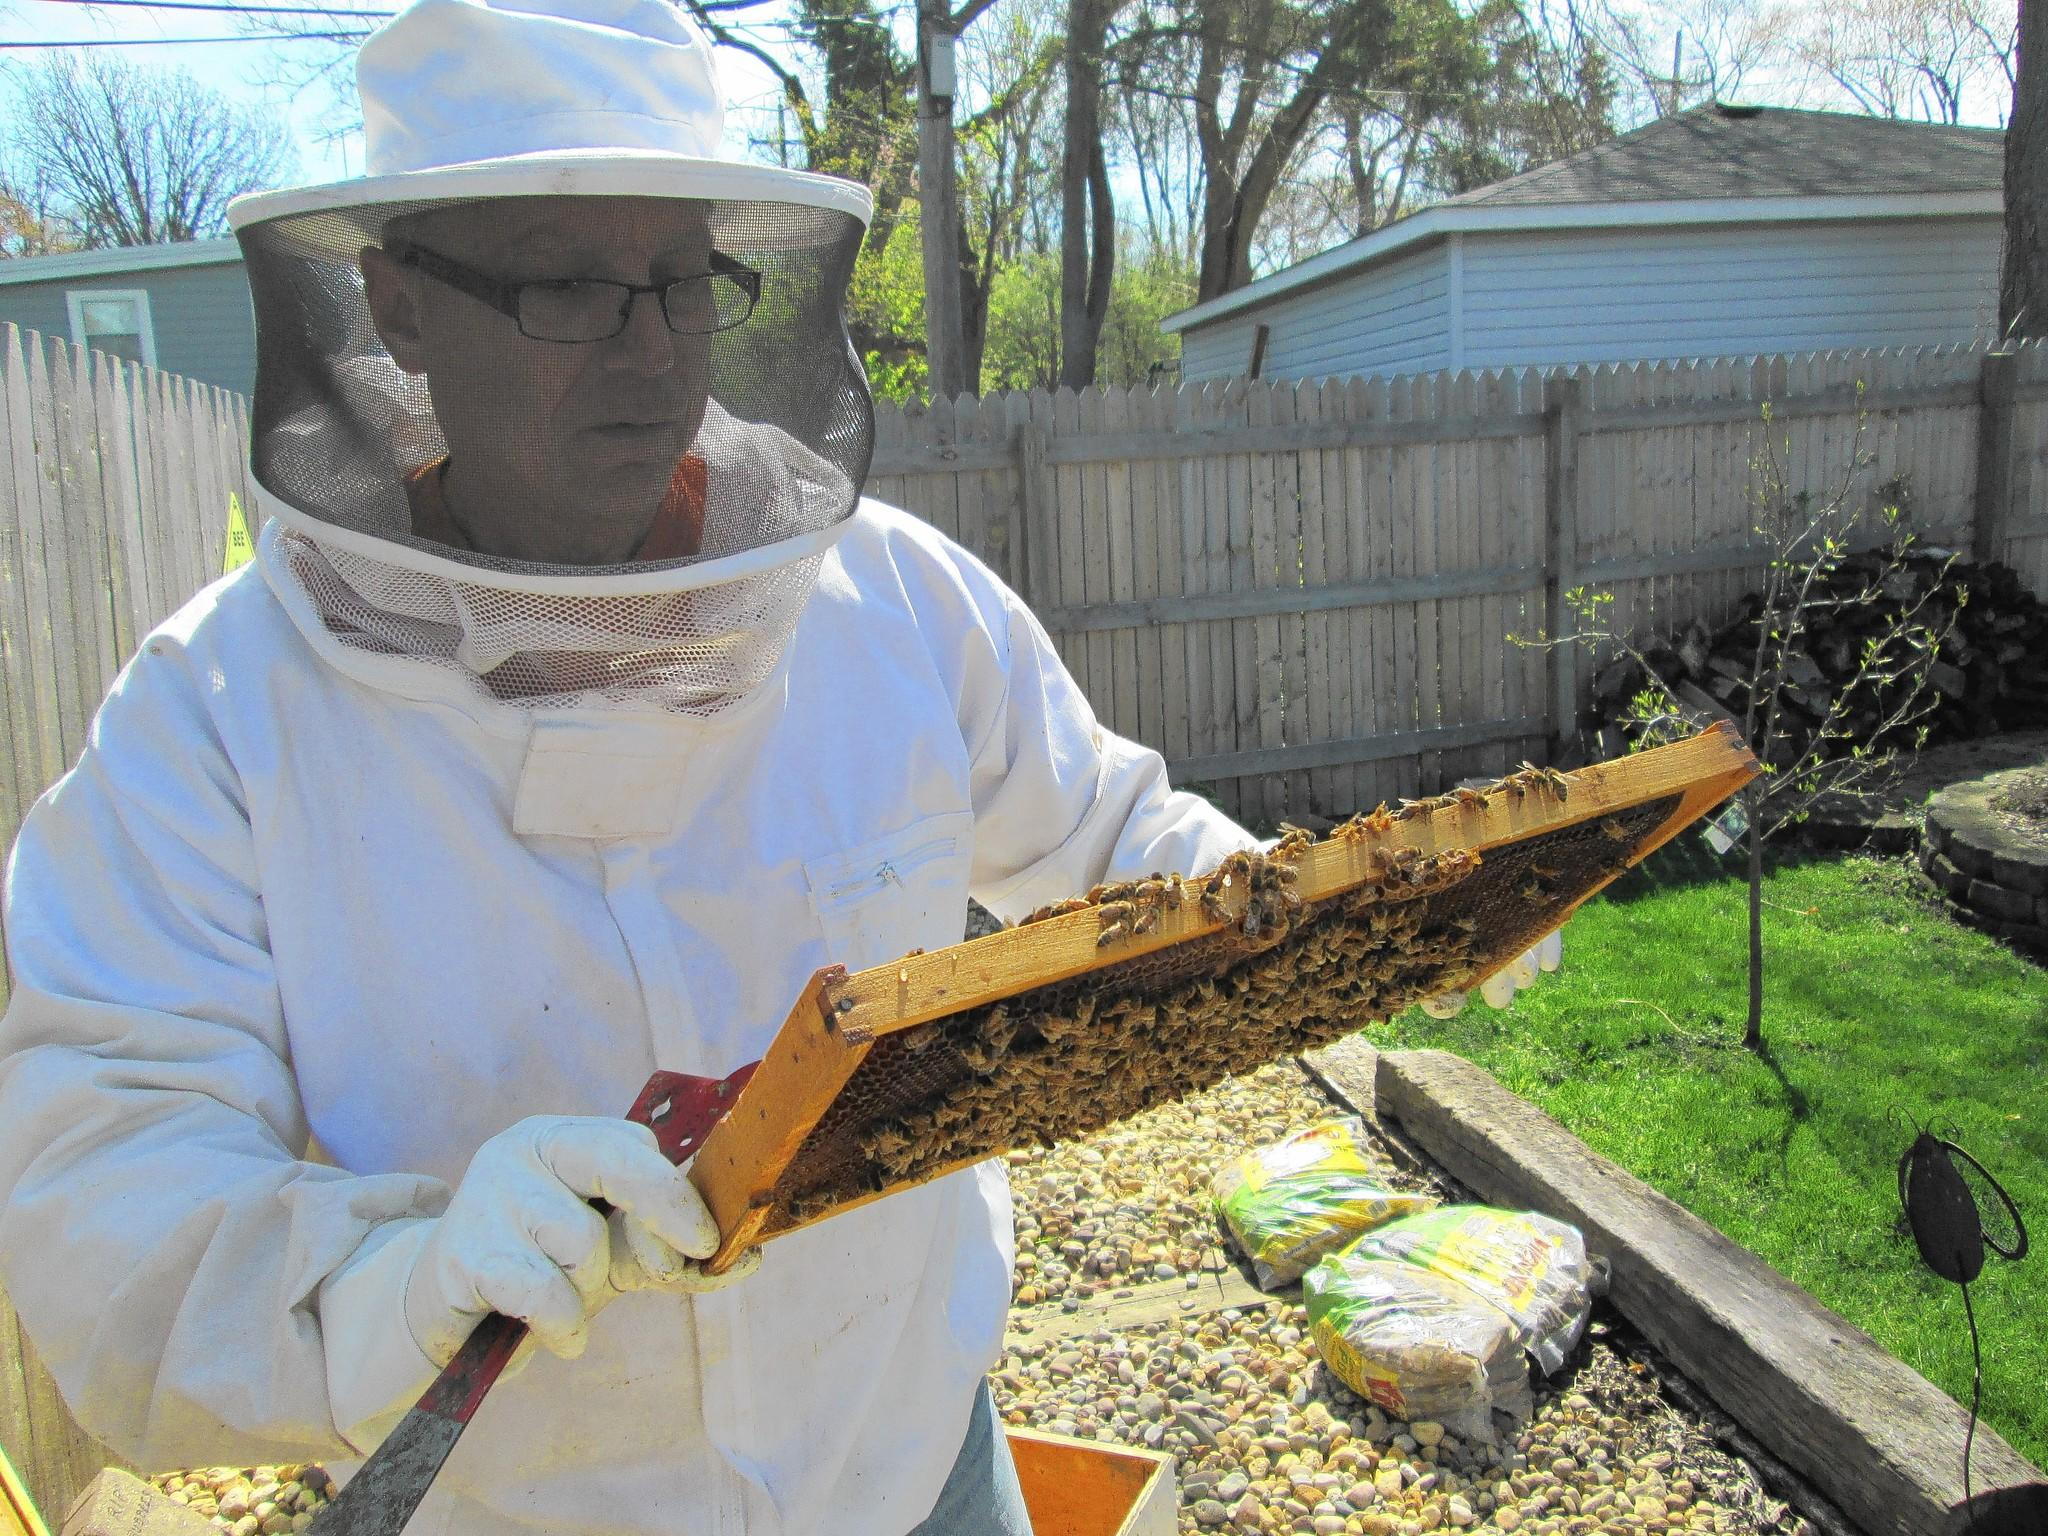 Clarendon Hills Police Chief Ted Jenkins, who is also a member of the Cook-DuPage Beekeepers Association, tends to his beehives at his west suburban home.